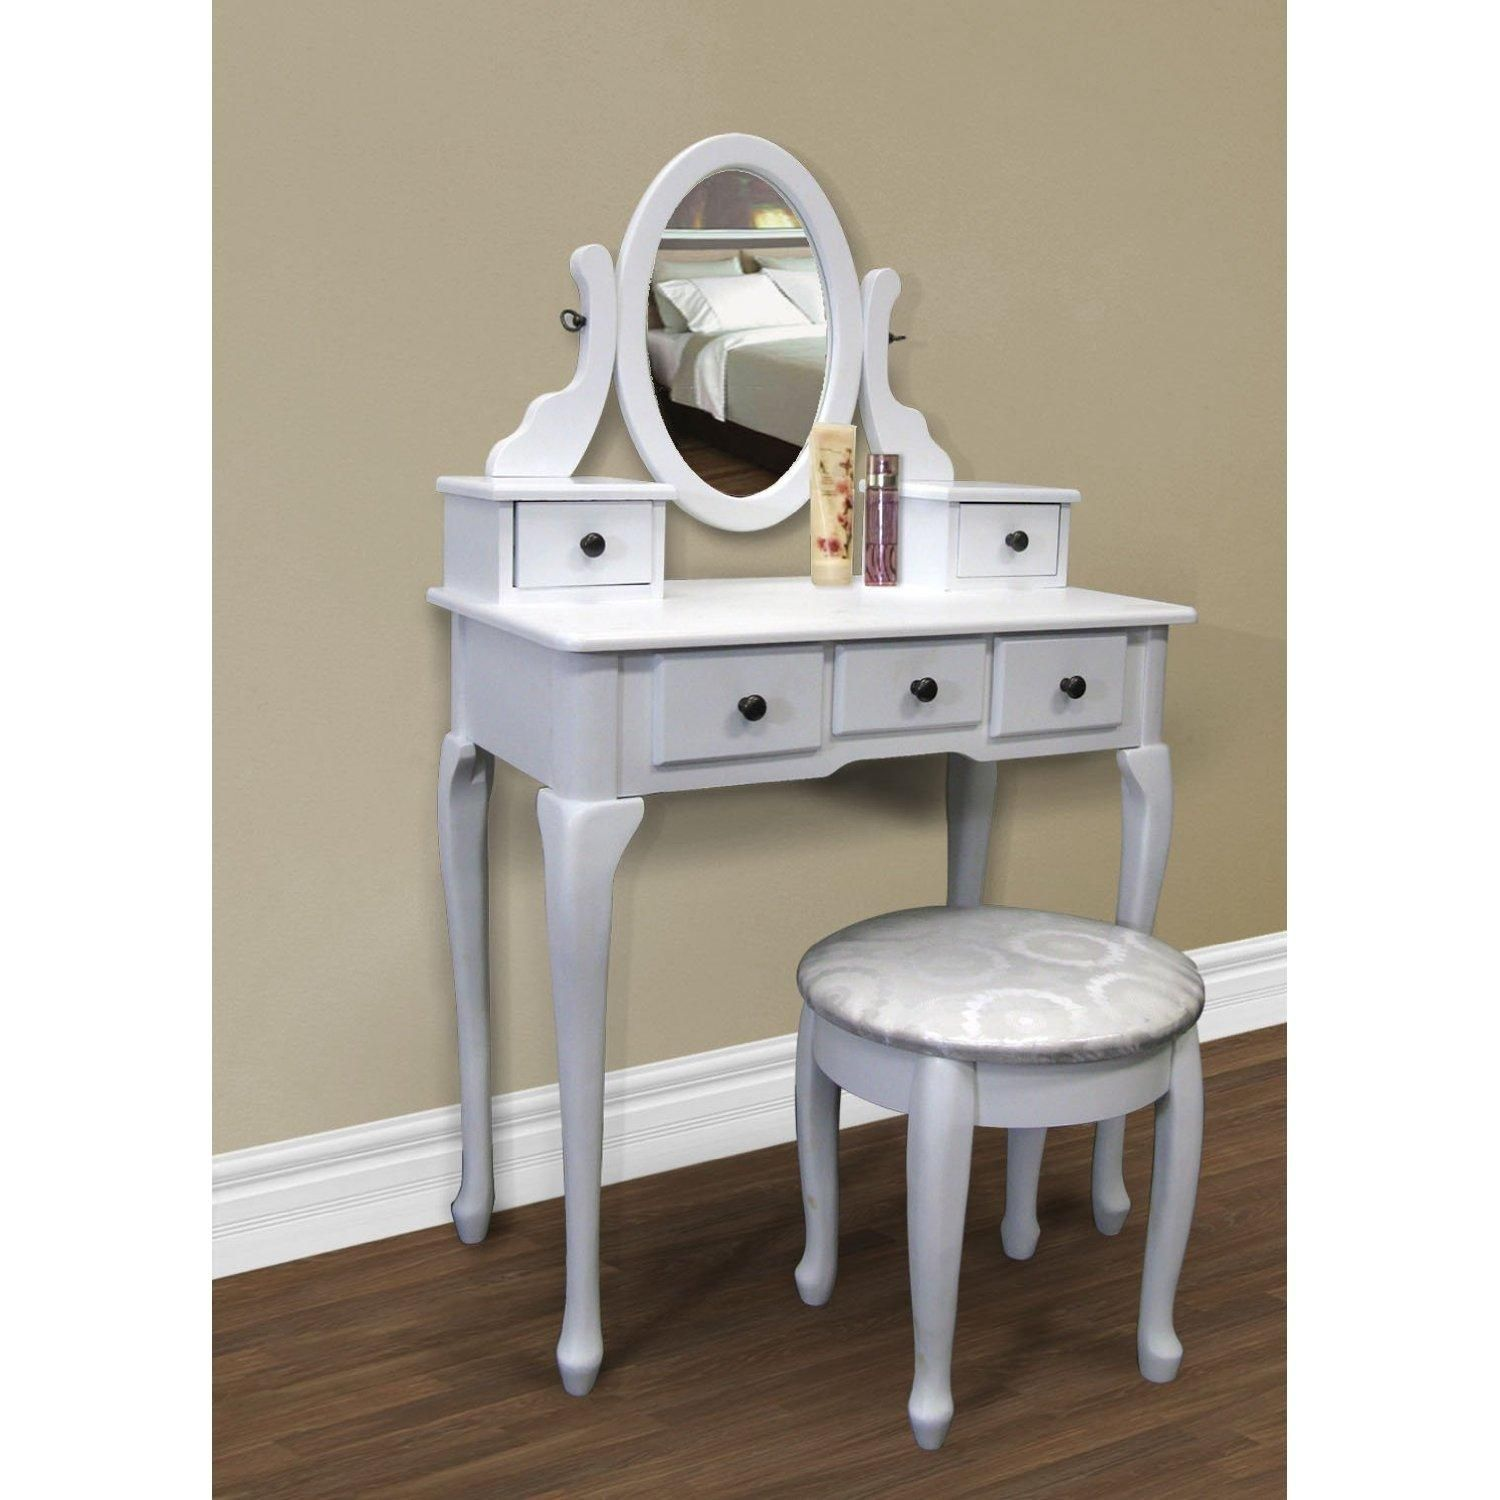 Small Vanity Desk With Lots Of Storage Space Makeup